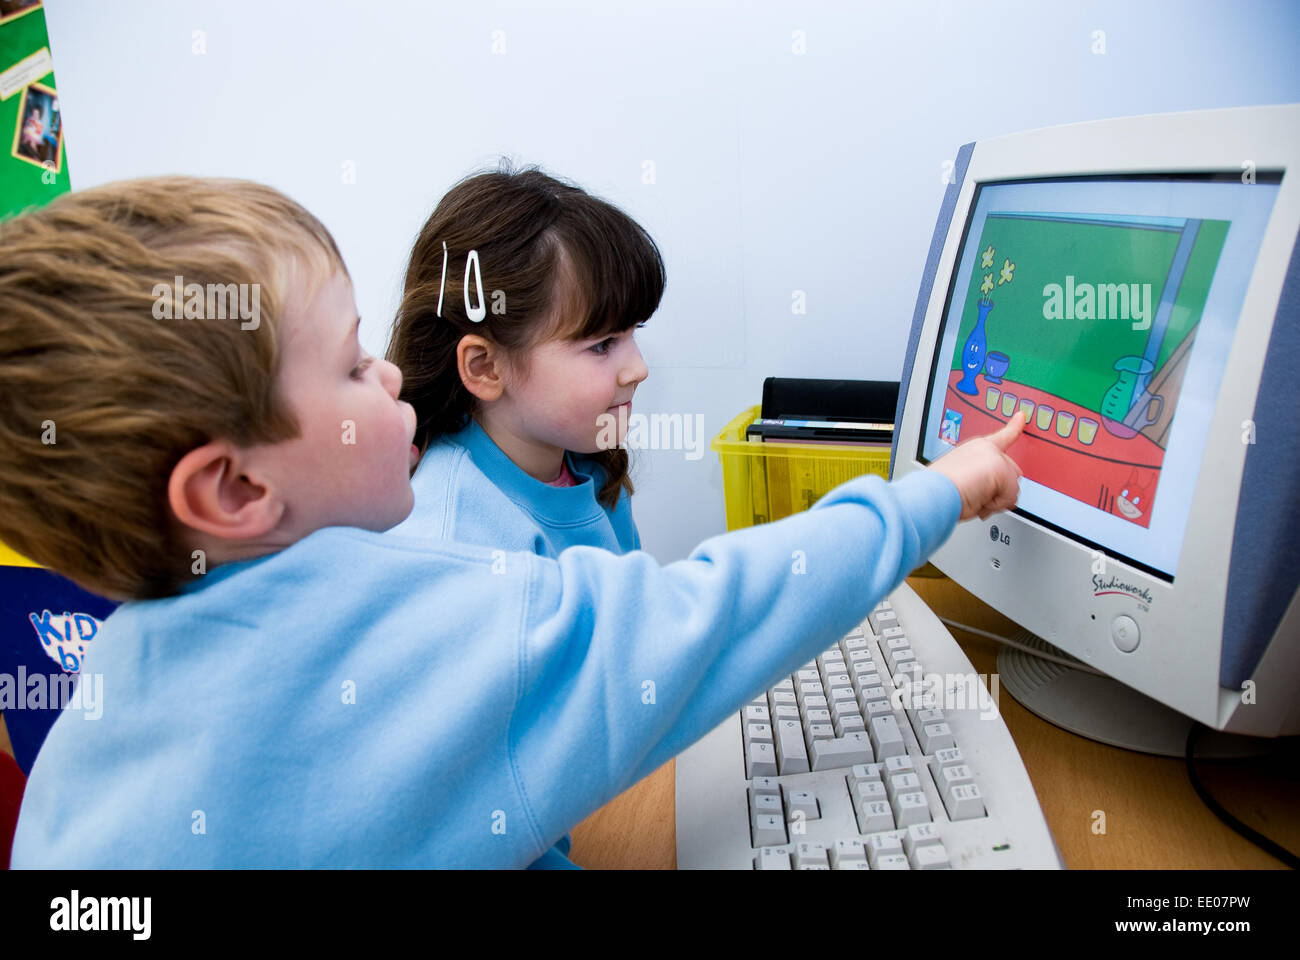 Learning Games 4 Toddlers Kids Stock Photos & Learning Games